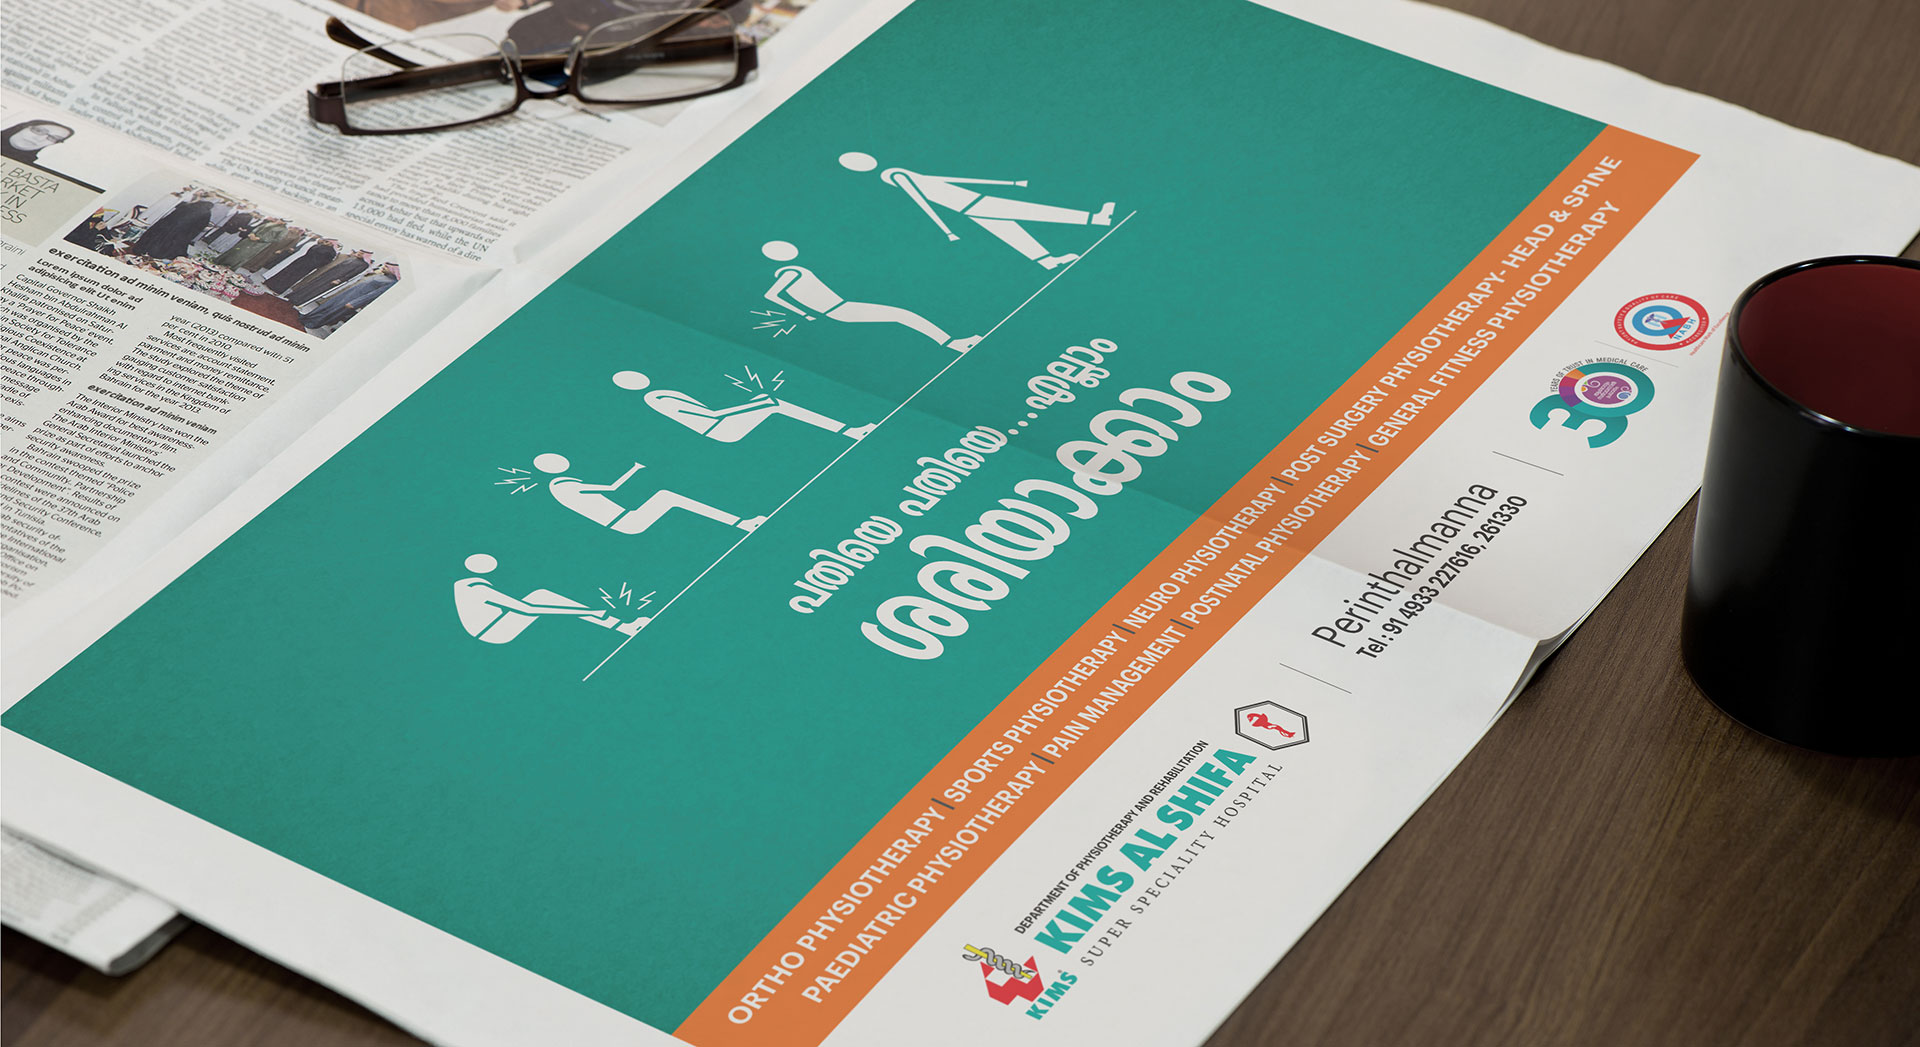 KIMS Al Shifa Hospital - Physiotherapy Department advertisement on newspaper